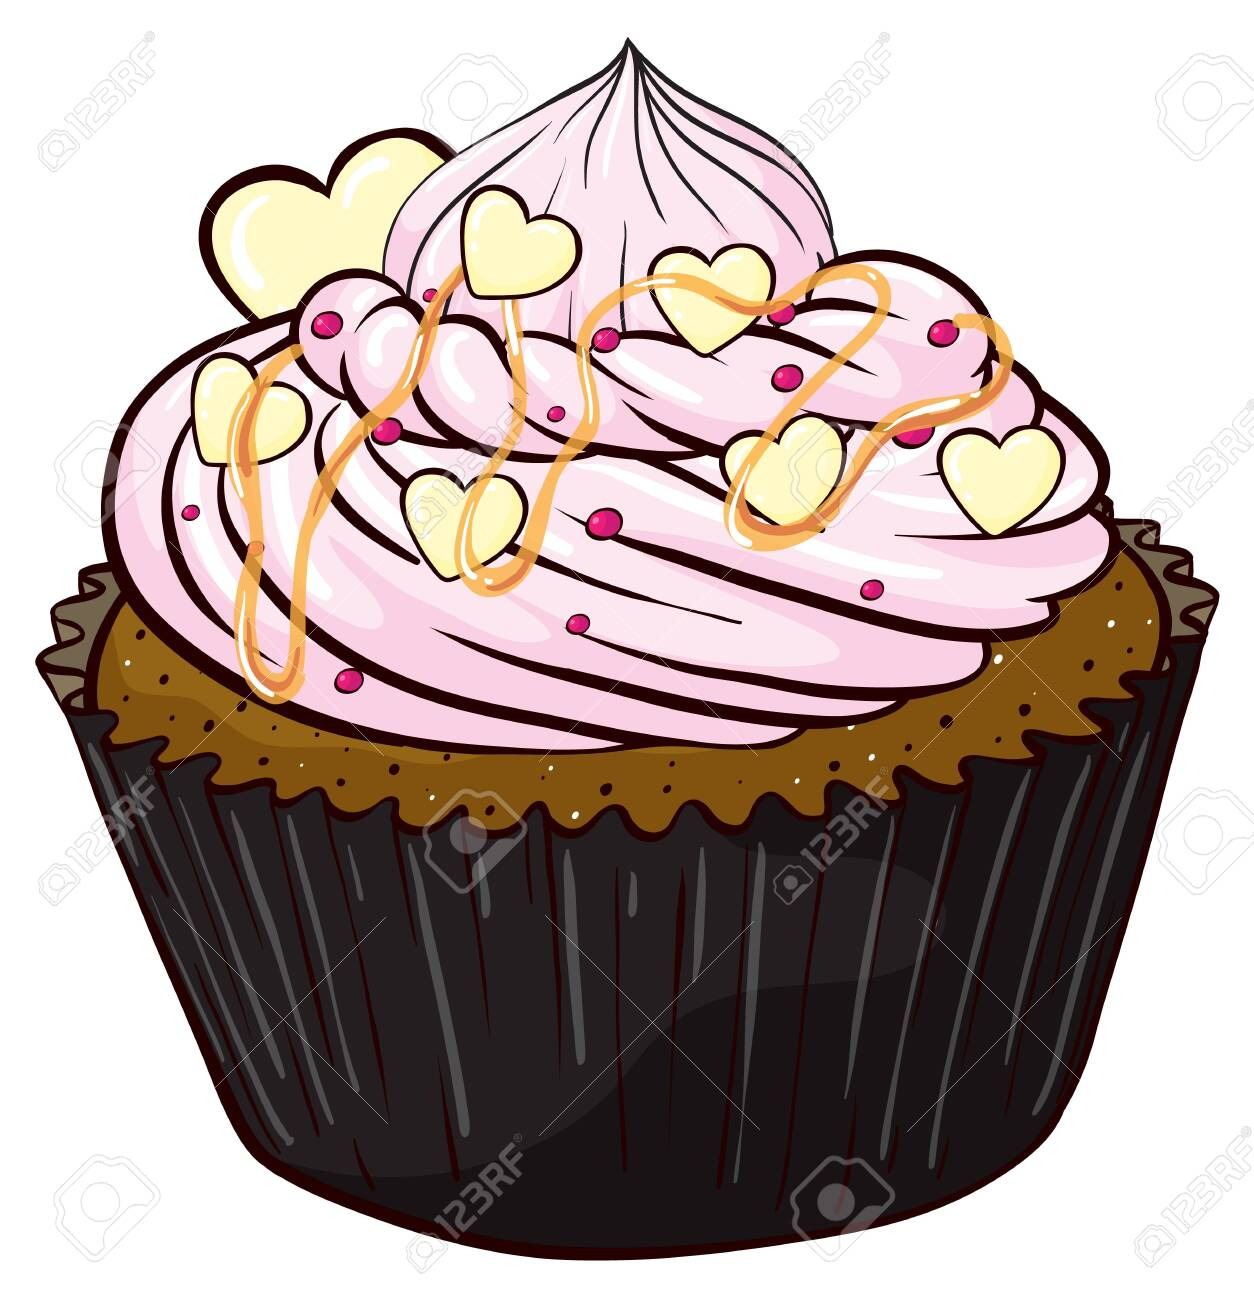 Illustration of an isolated cupcake Stock Vector - 16115583